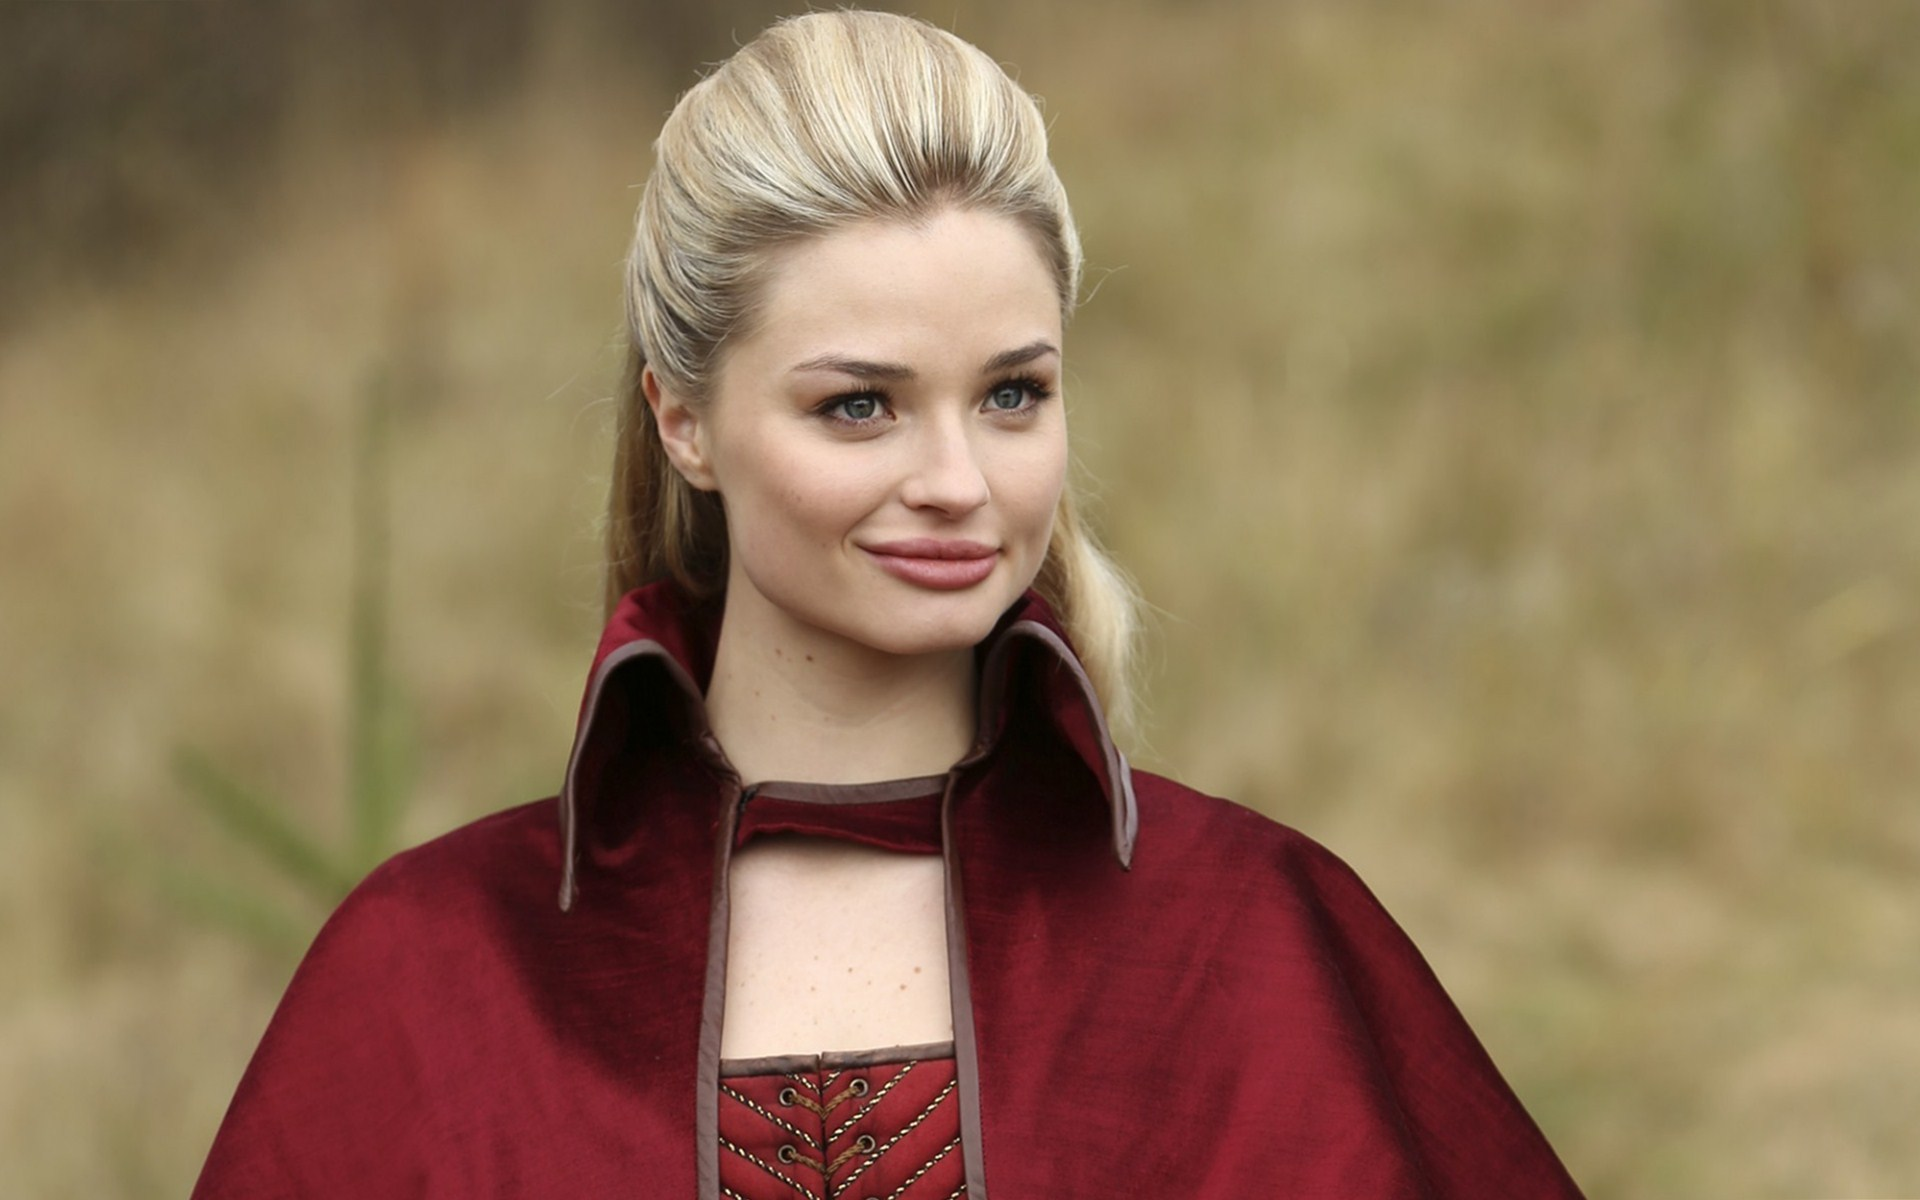 Photos Emma Rigby nude photos 2019